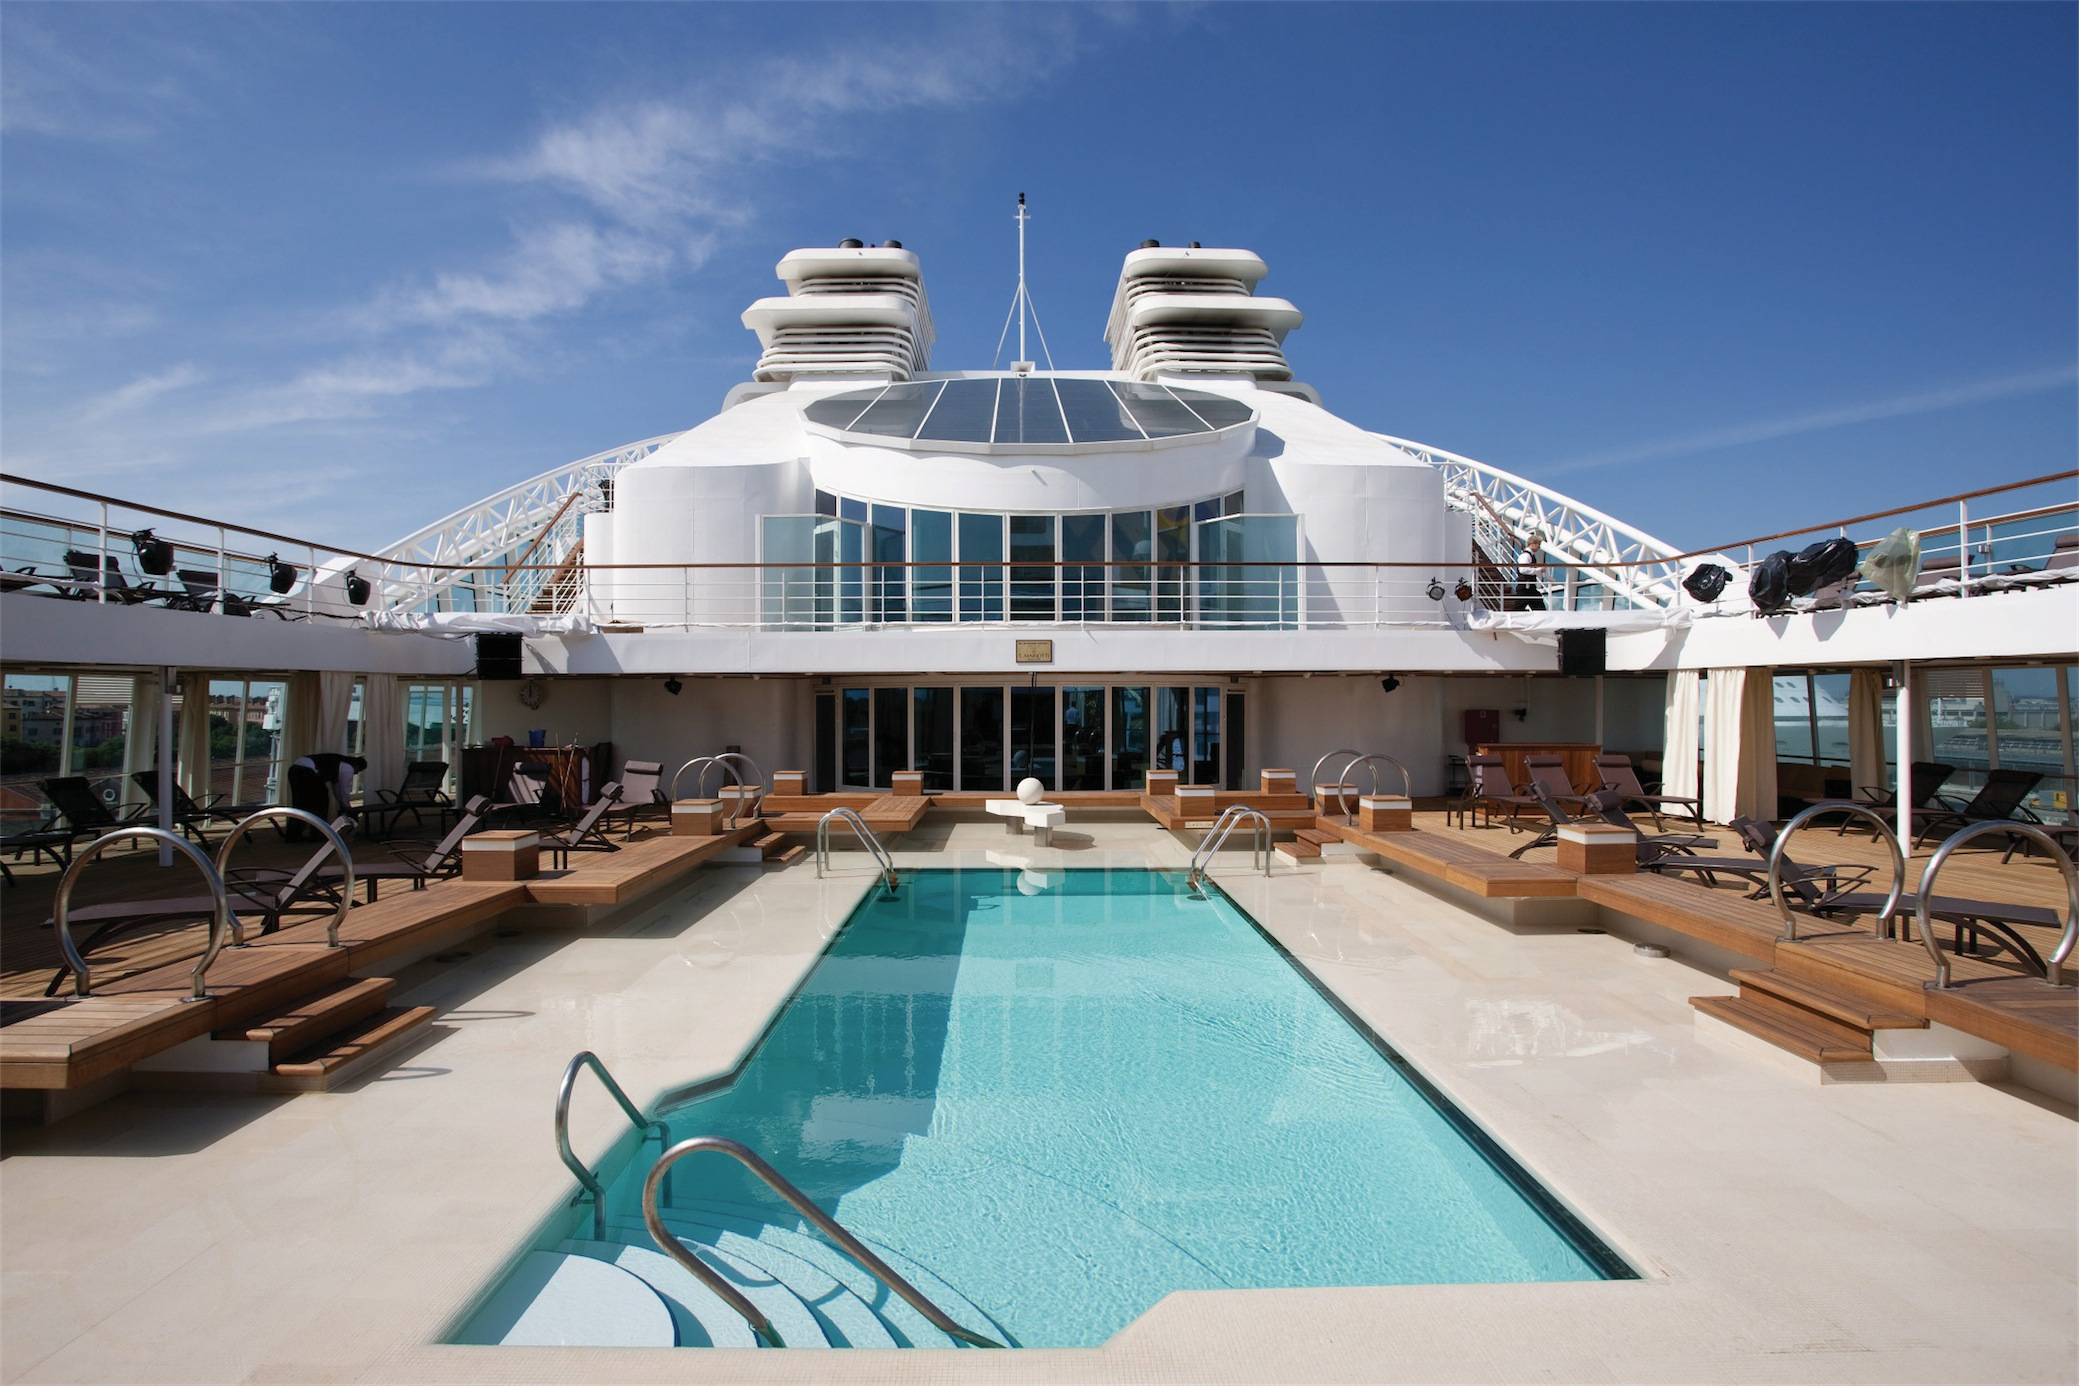 Seabourn Odyssey Class Exterior Pool Deck.jpg